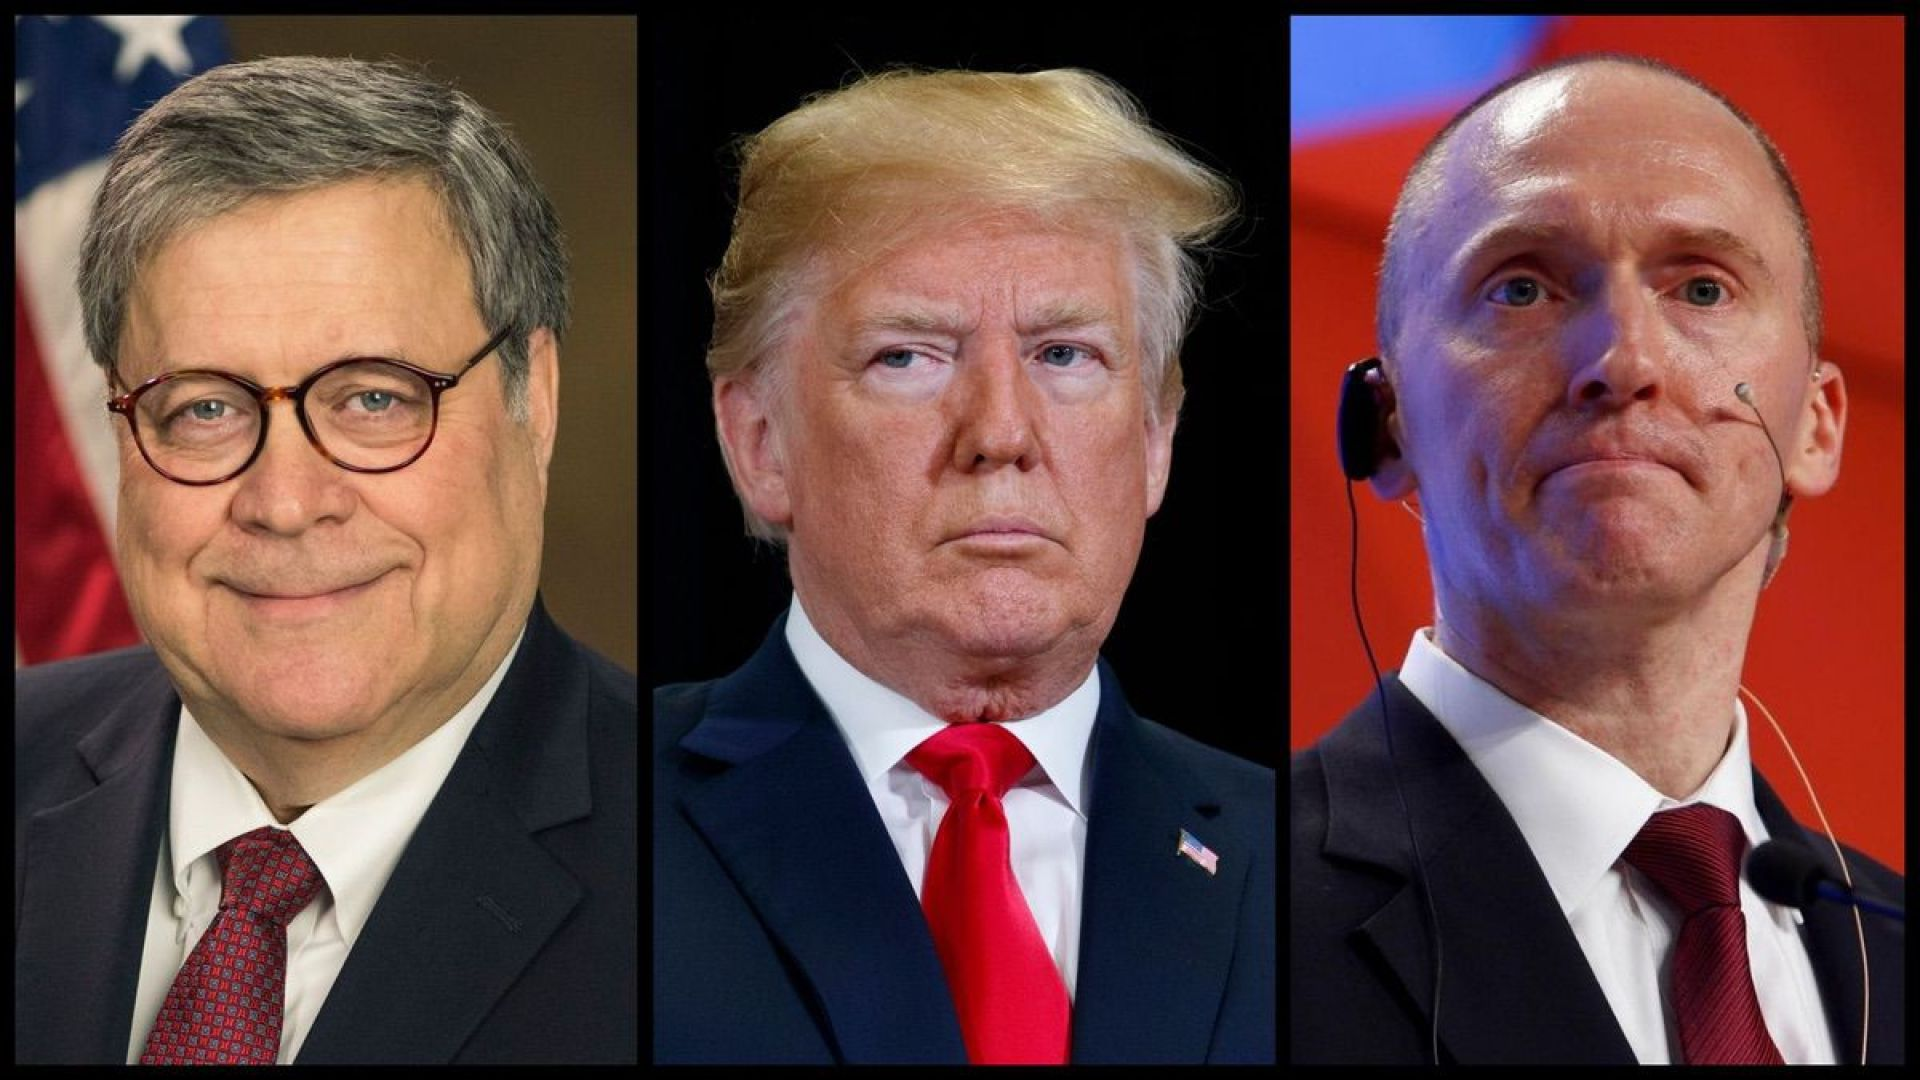 From left: Attorney General William Barr, President Donald Trump, and former Campaign Adviser Carter Page.